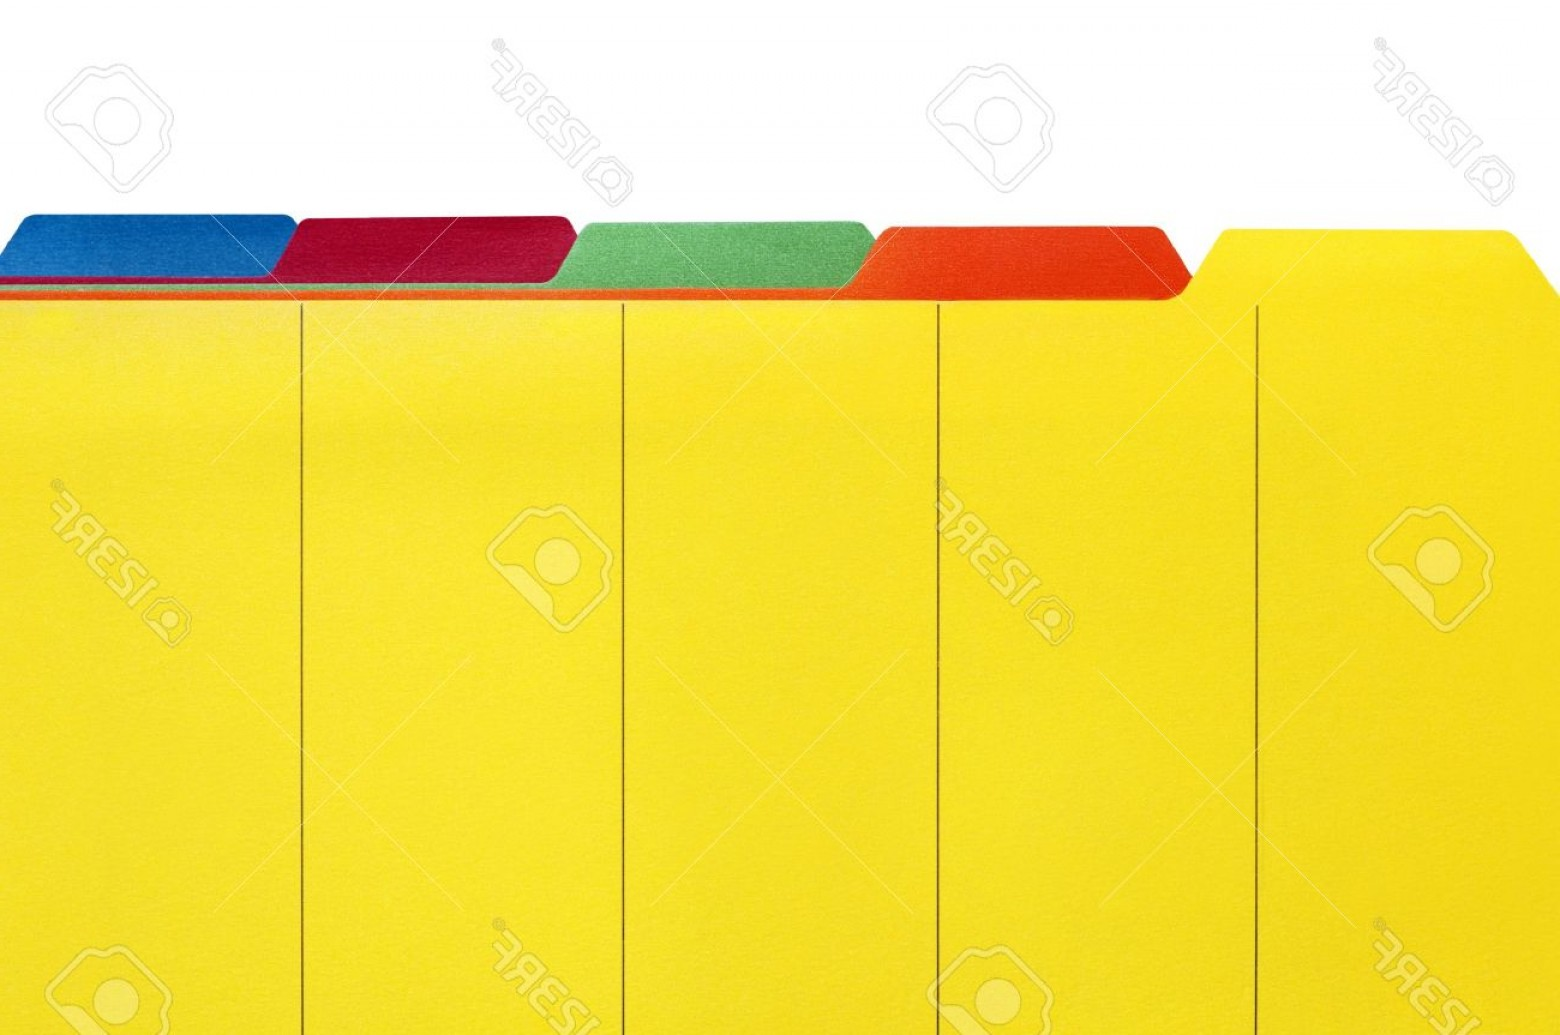 Folder Tab Vectors: Photovibrant File Divider Tabs Ready For Your Own Labels White Background